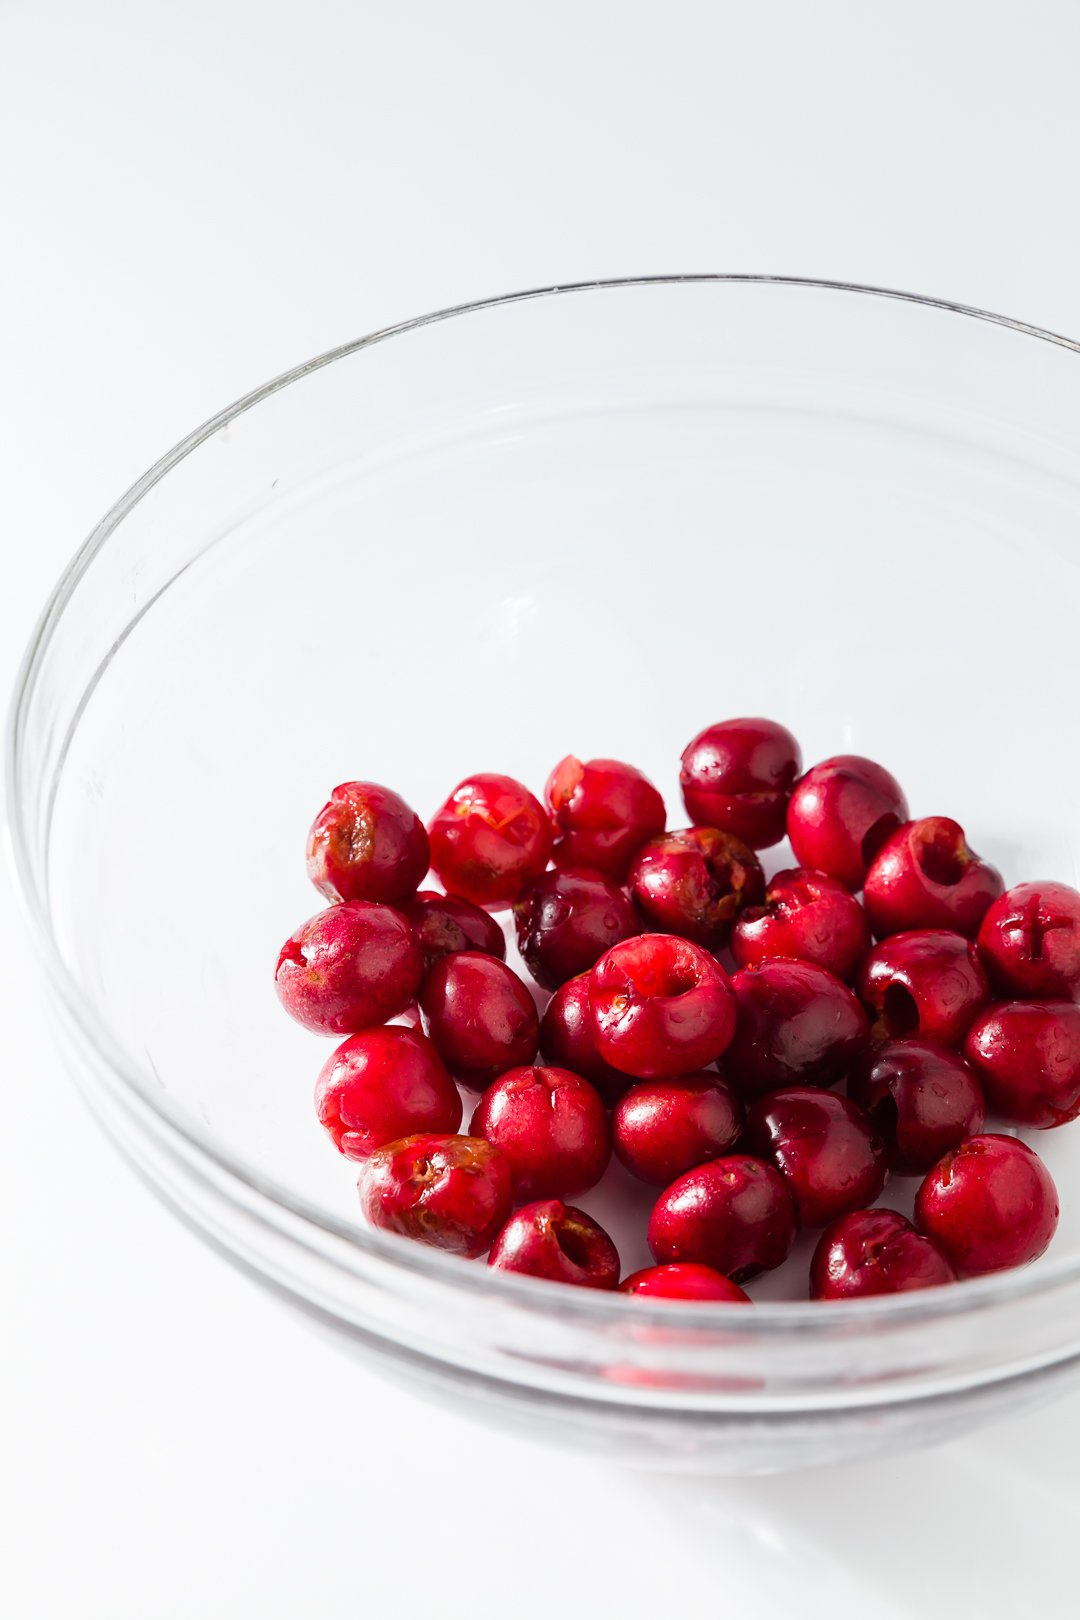 A glass bowl of pitted cherries